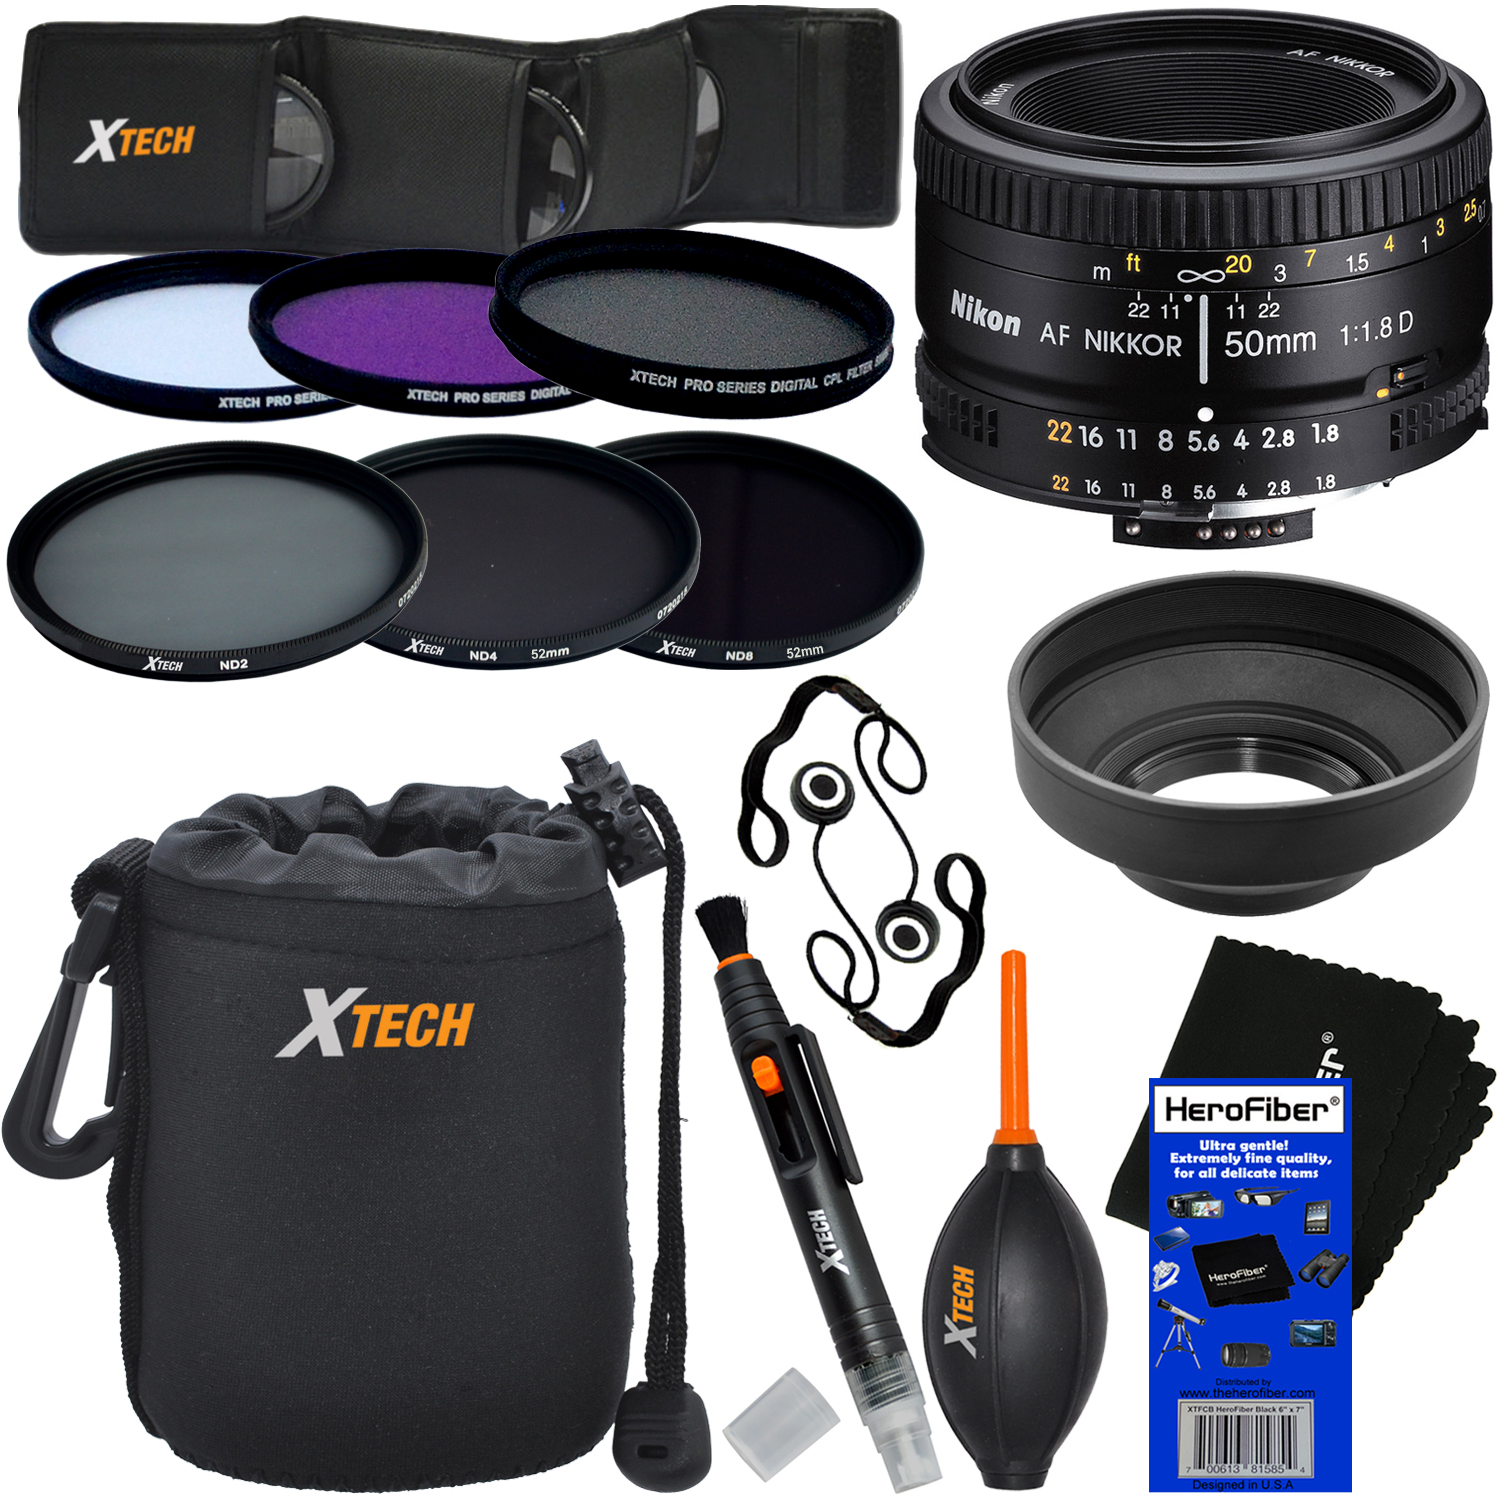 Nikon AF FX NIKKOR 50mm f/1.8D Lens with Auto Focus for Nikon DSLR Cameras + ND Filters ND2, ND4, ND8 + 11pc Deluxe Accessory Kit w/ HeroFiber Cleaning Cloth